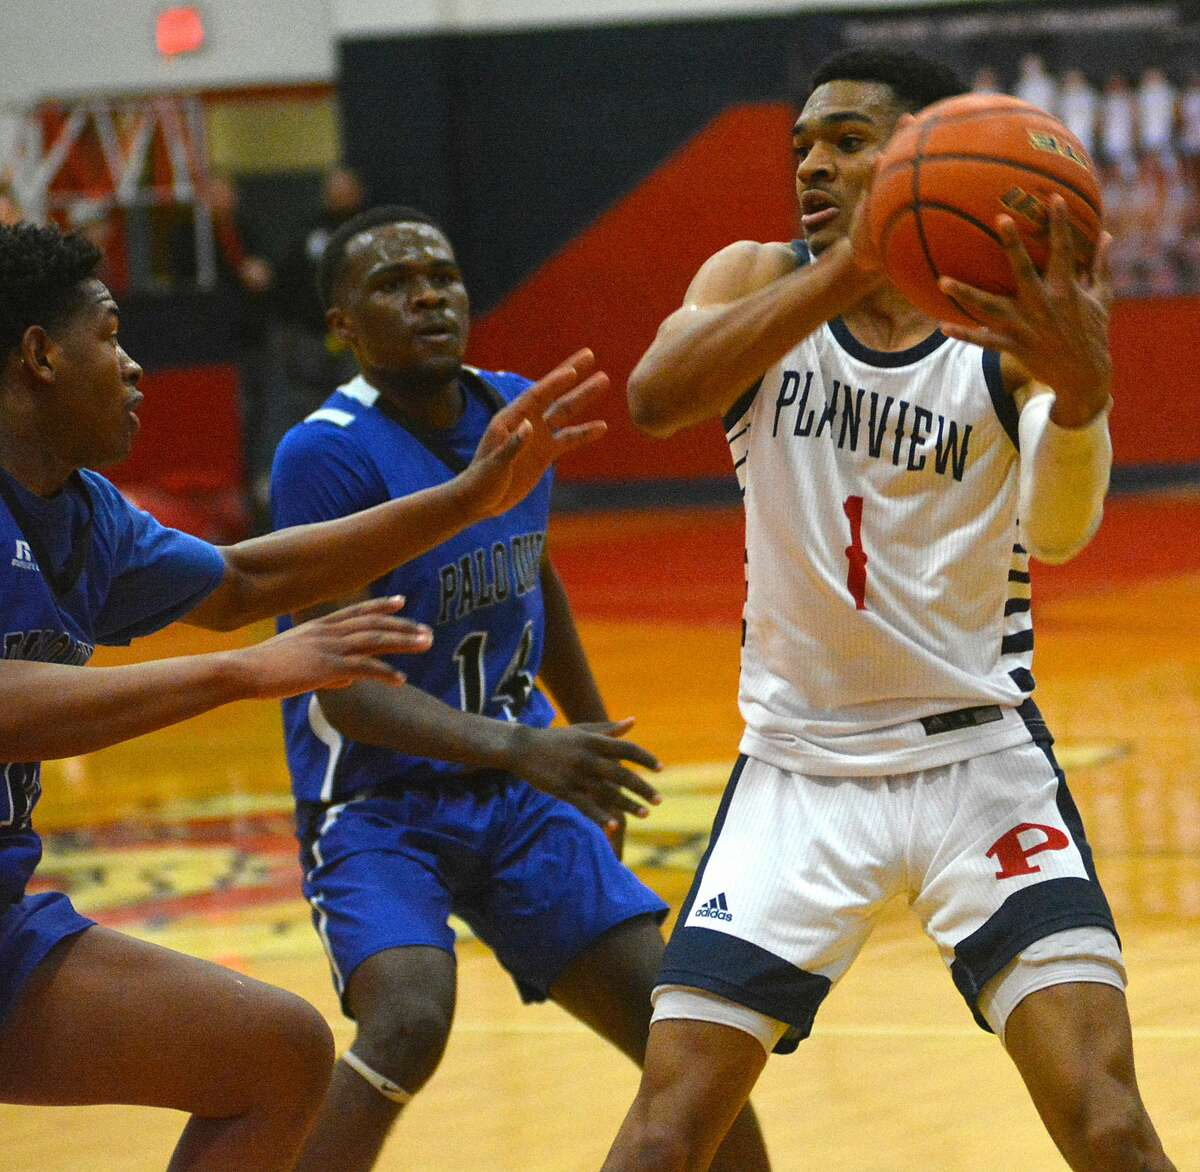 Plainview's Ryan Jackson tries to pass out of a double team against Amarillo Palo Duro in a District 3-5A boys basketball game on Tuesday in the Dog House.